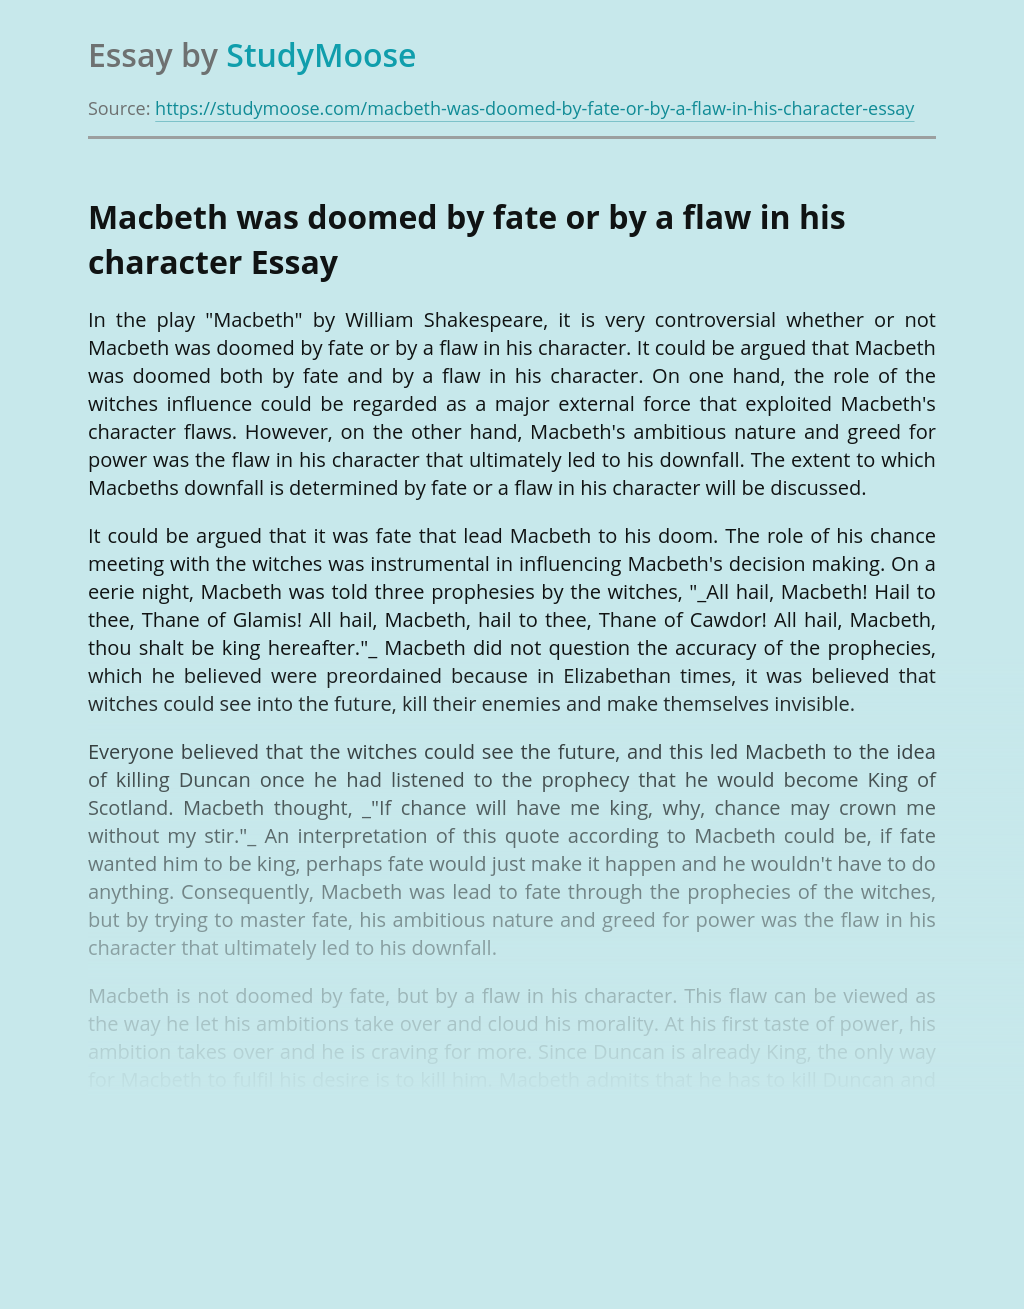 Macbeth was doomed by fate or by a flaw in his character